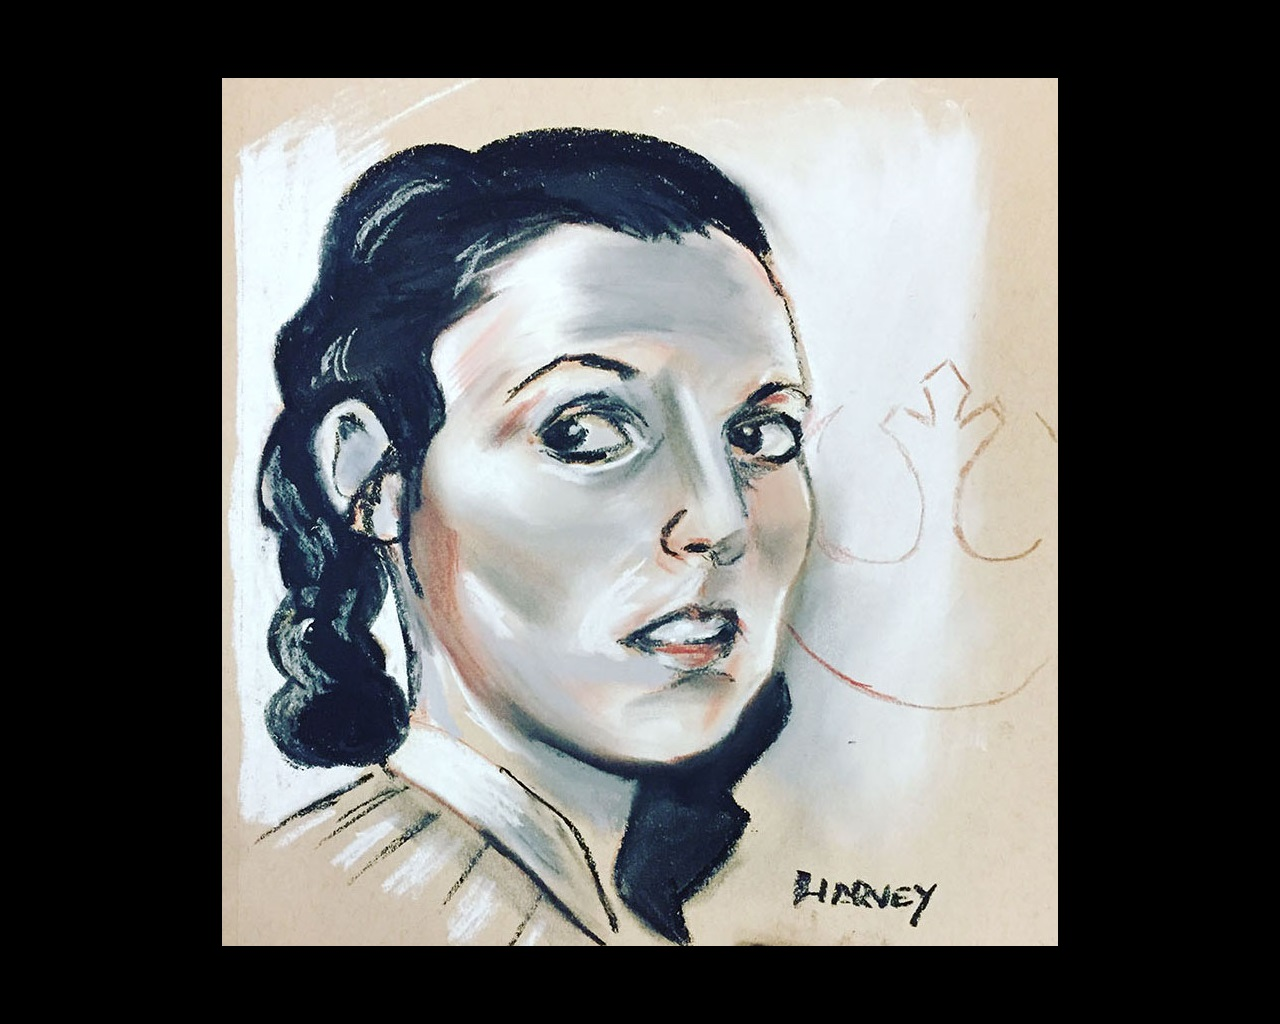 Chalk drawing of Princess Leia